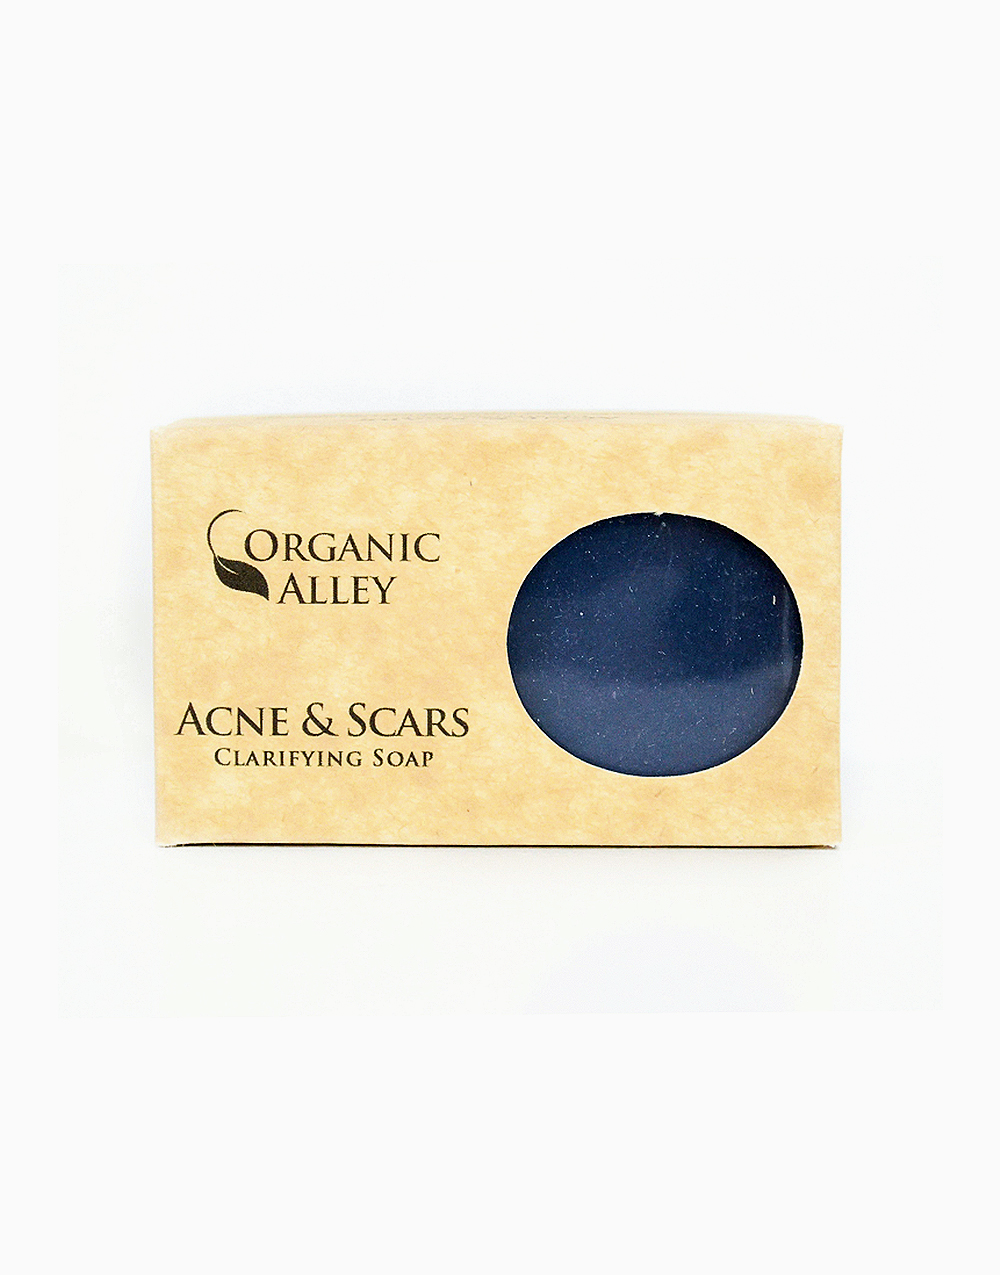 Acne & Scars Be Gone Clarifying Soap by Organic Alley